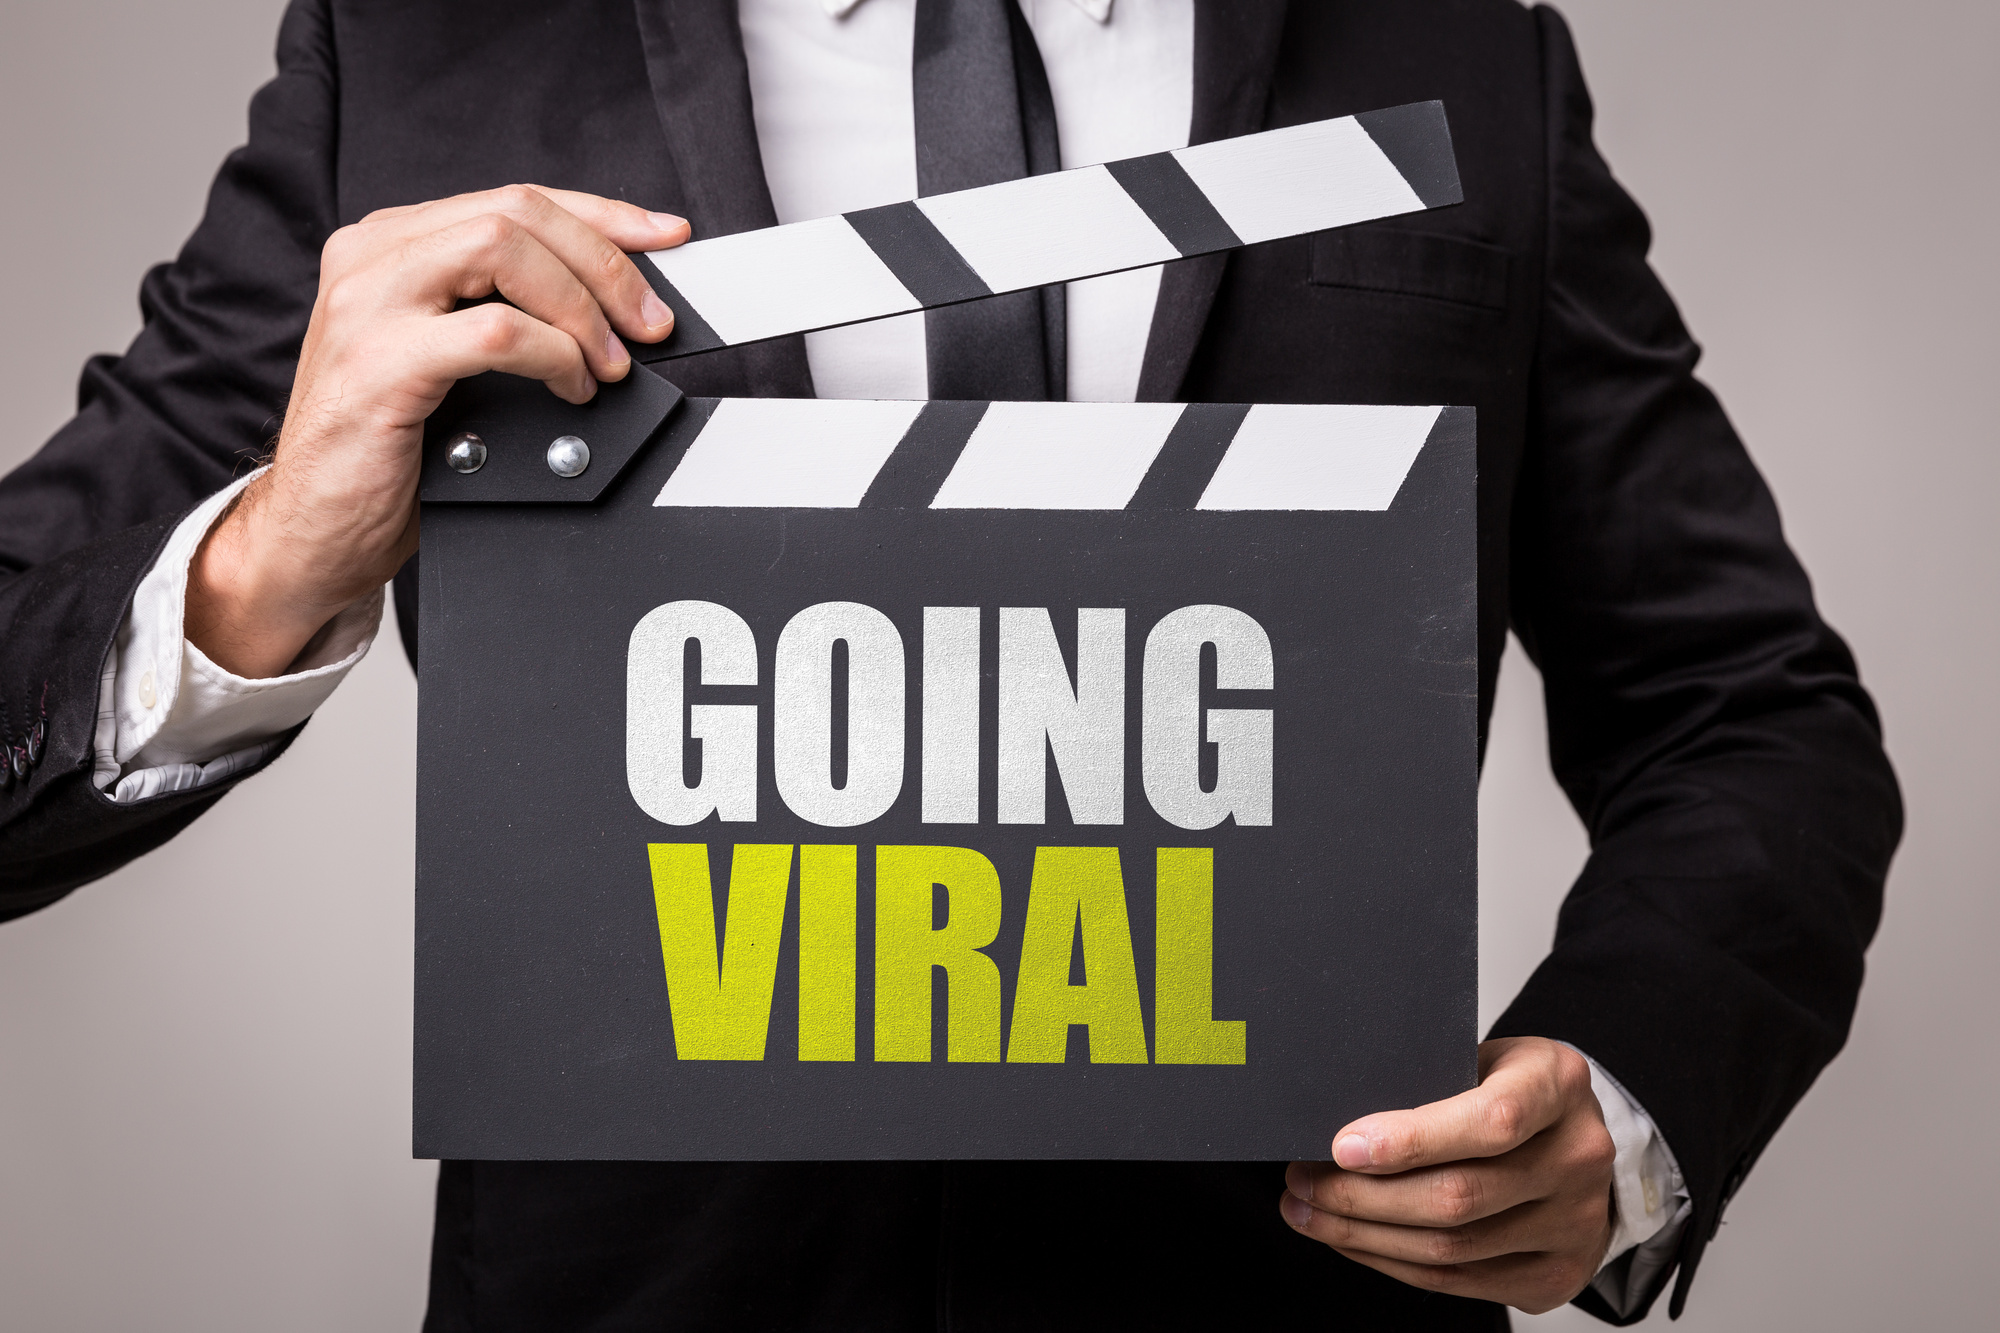 Viral Video Making